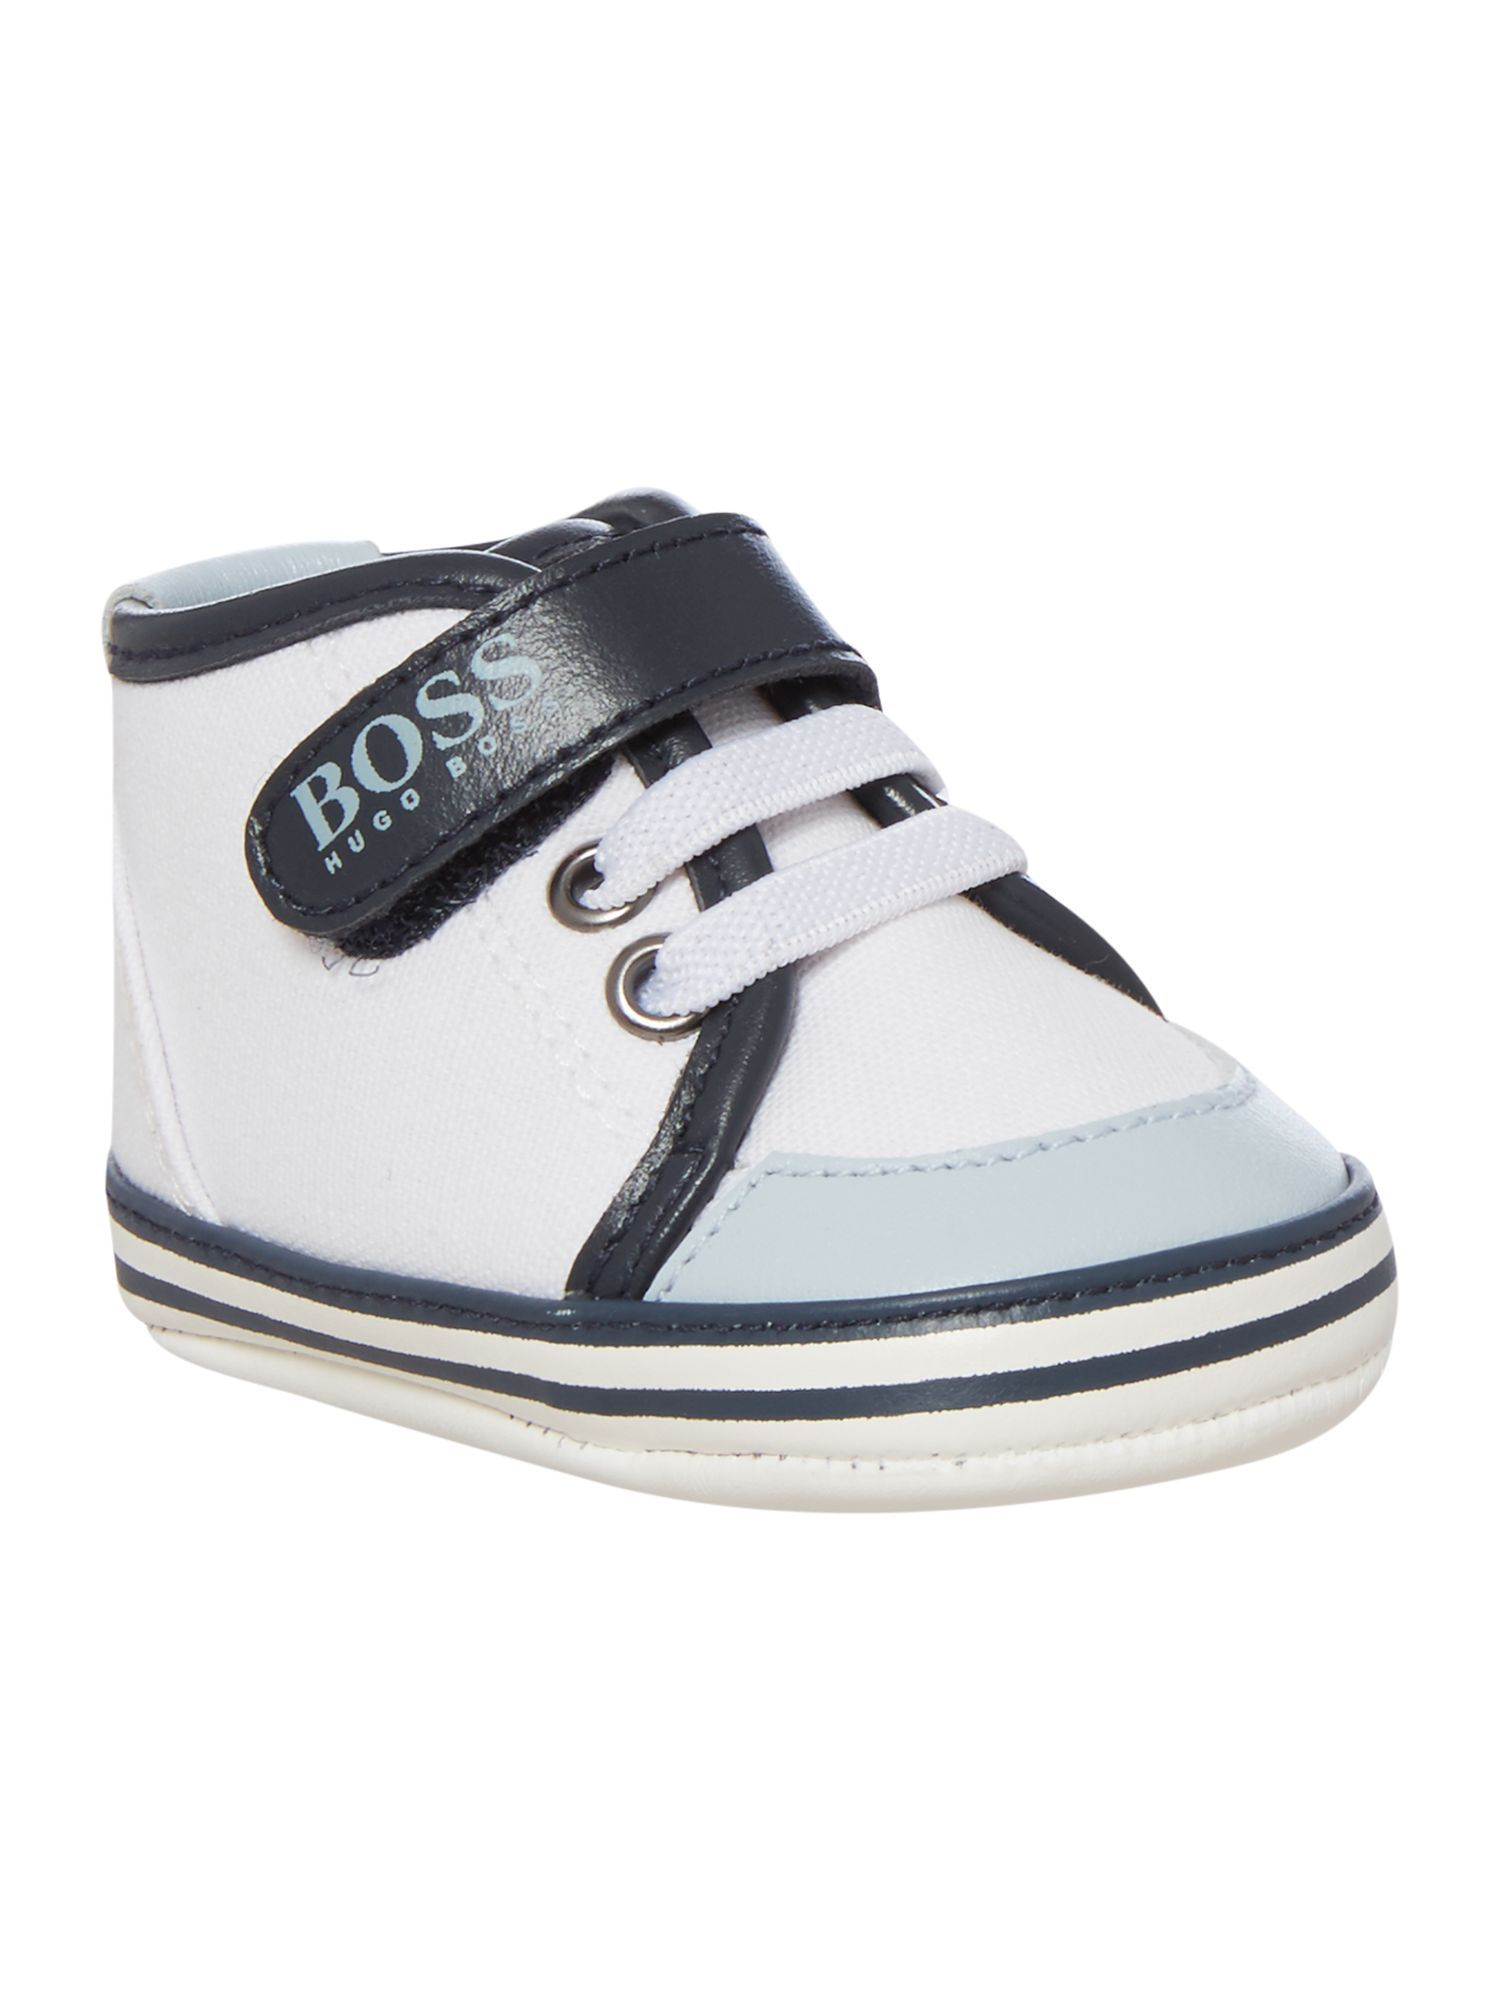 Hugo Boss Baby Boys Cotton Canvas Trainers 4b63758d433a